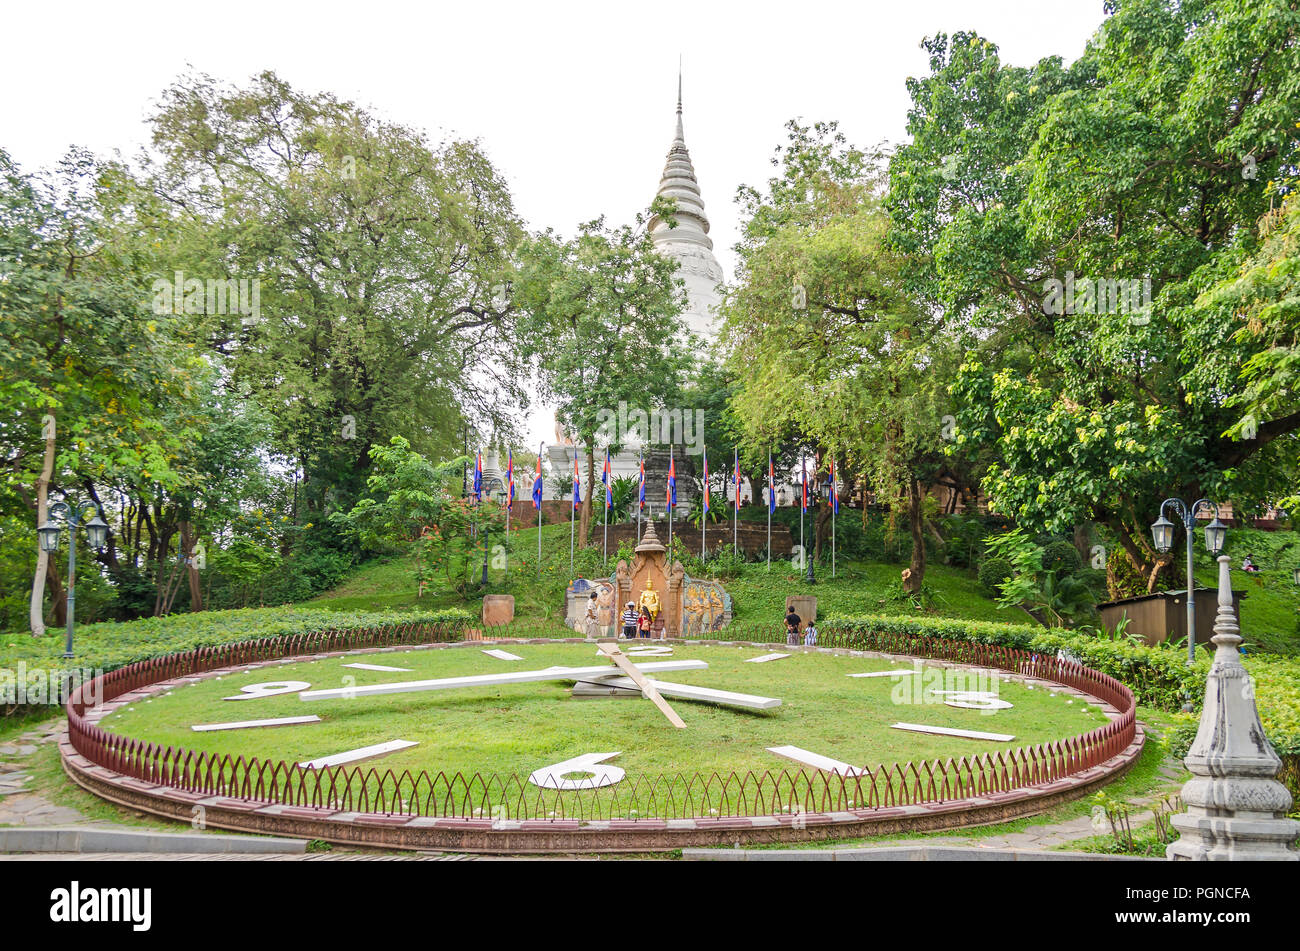 Phnom Penh, Cambodia - April 8, 2018: The main stupa and garden of Wat Phnom (Mountain Pagoda), the central point of Phnom Penh, and the statue of Kin Stock Photo